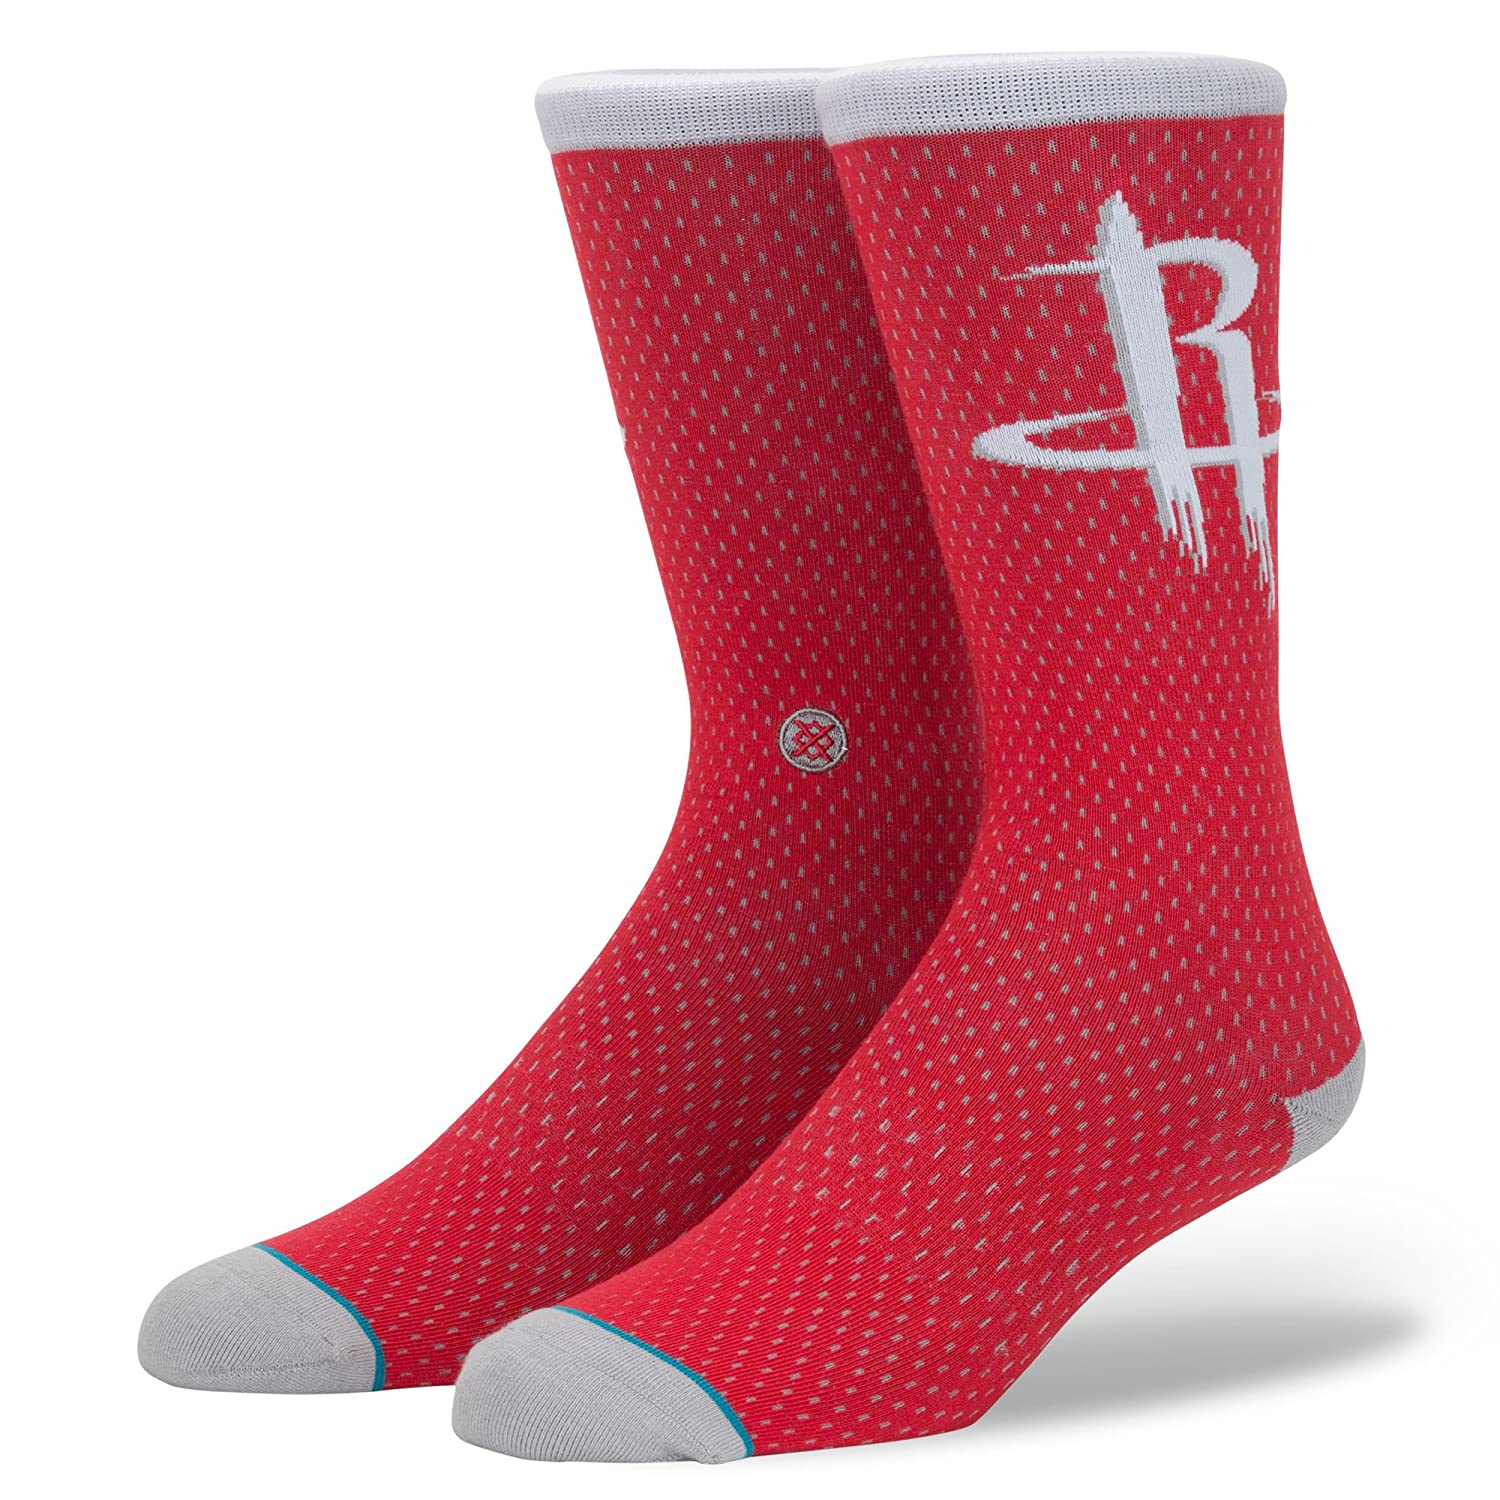 Stance NBA Rockets Jersey Crew Socks - Red Medium Stance Socks M545D17ROC-RED-Red-M (UK5-8)